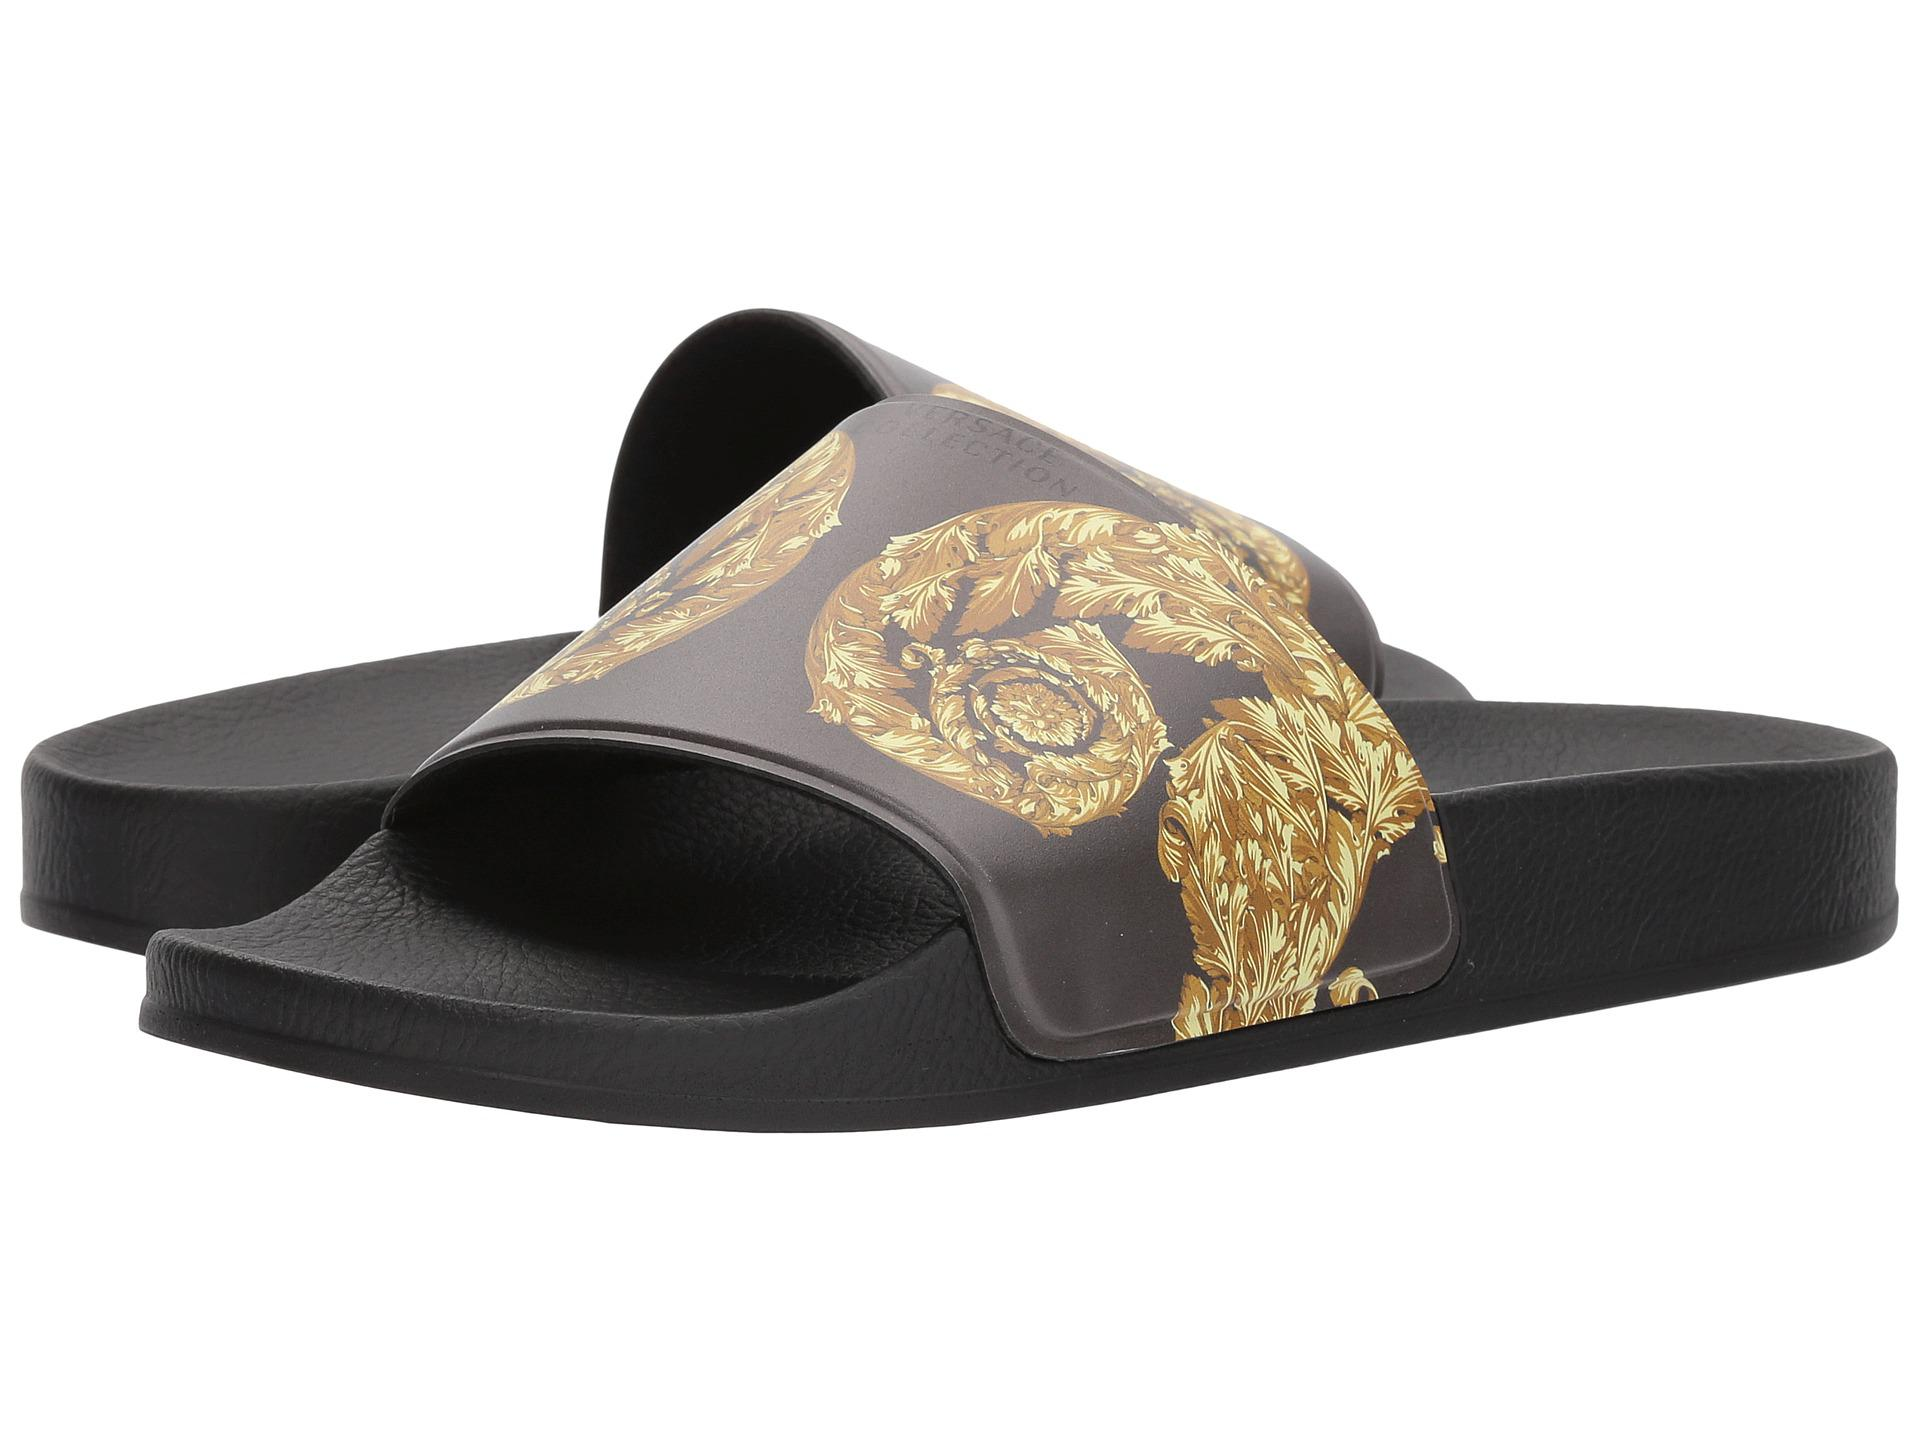 8005f44ac92c Gallery. Previously sold at  Zappos Luxury · Men s Slides Men s Versace  Baroque ...